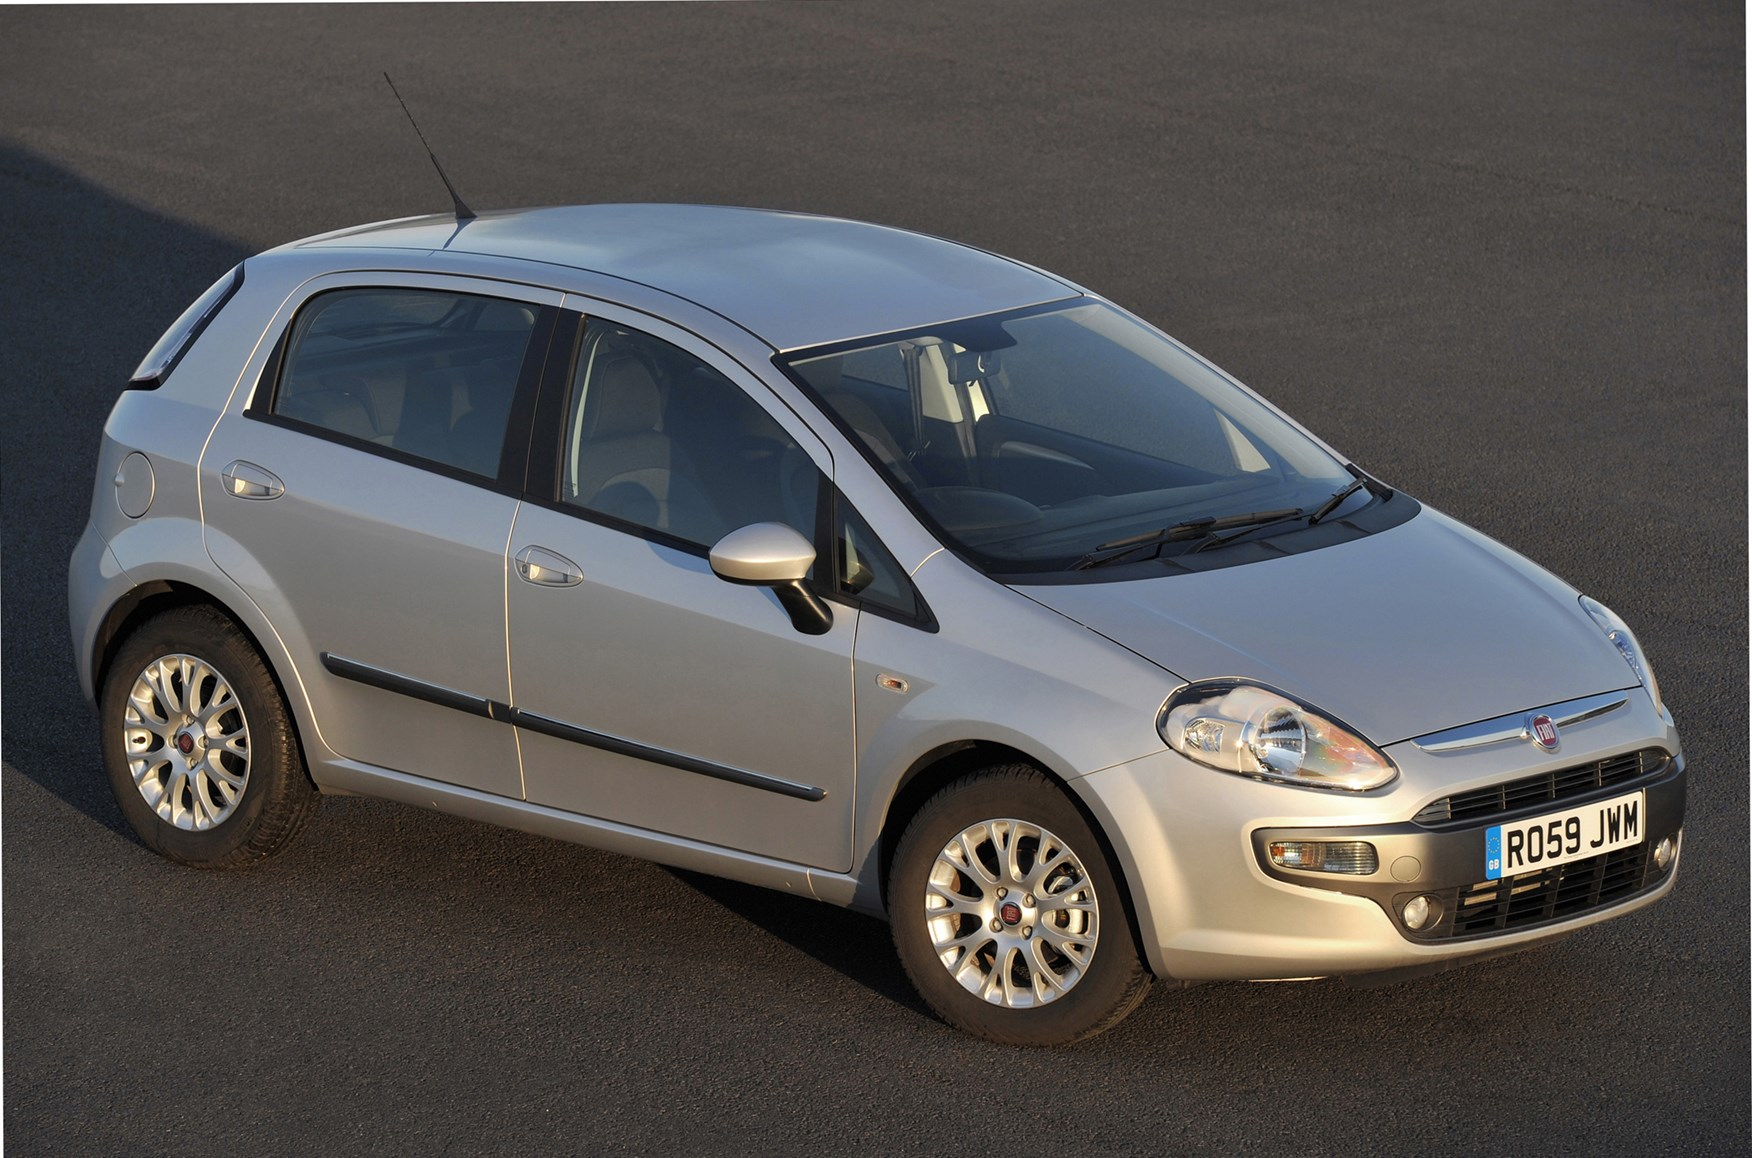 fiat punto evo hatchback review 2010 2012 parkers. Black Bedroom Furniture Sets. Home Design Ideas